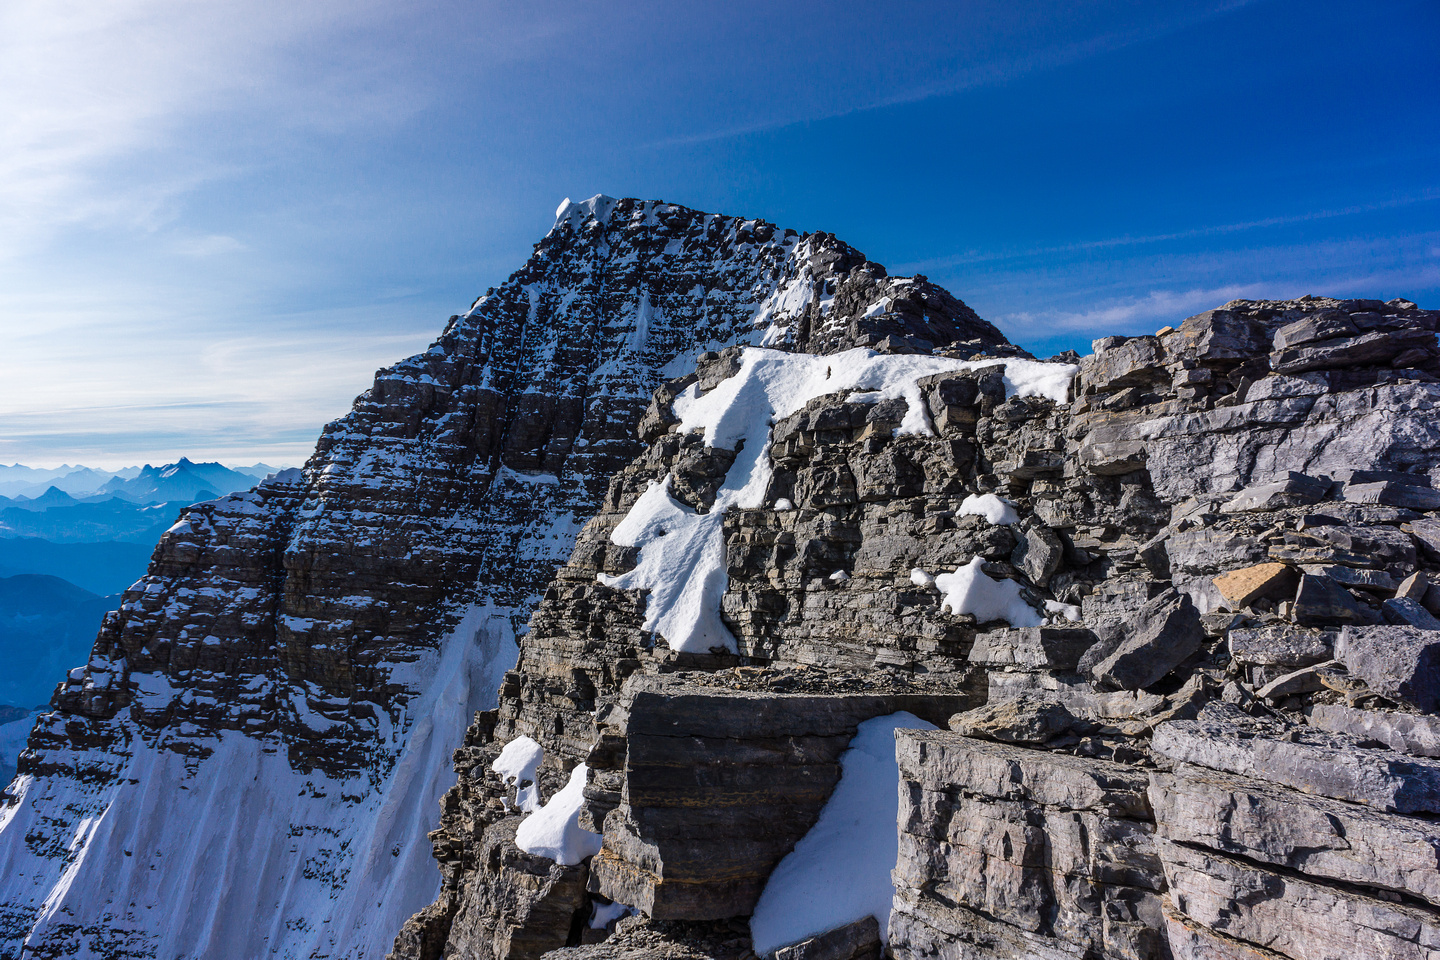 The summit of Mount Assiniboine comes into view! Almost half way...